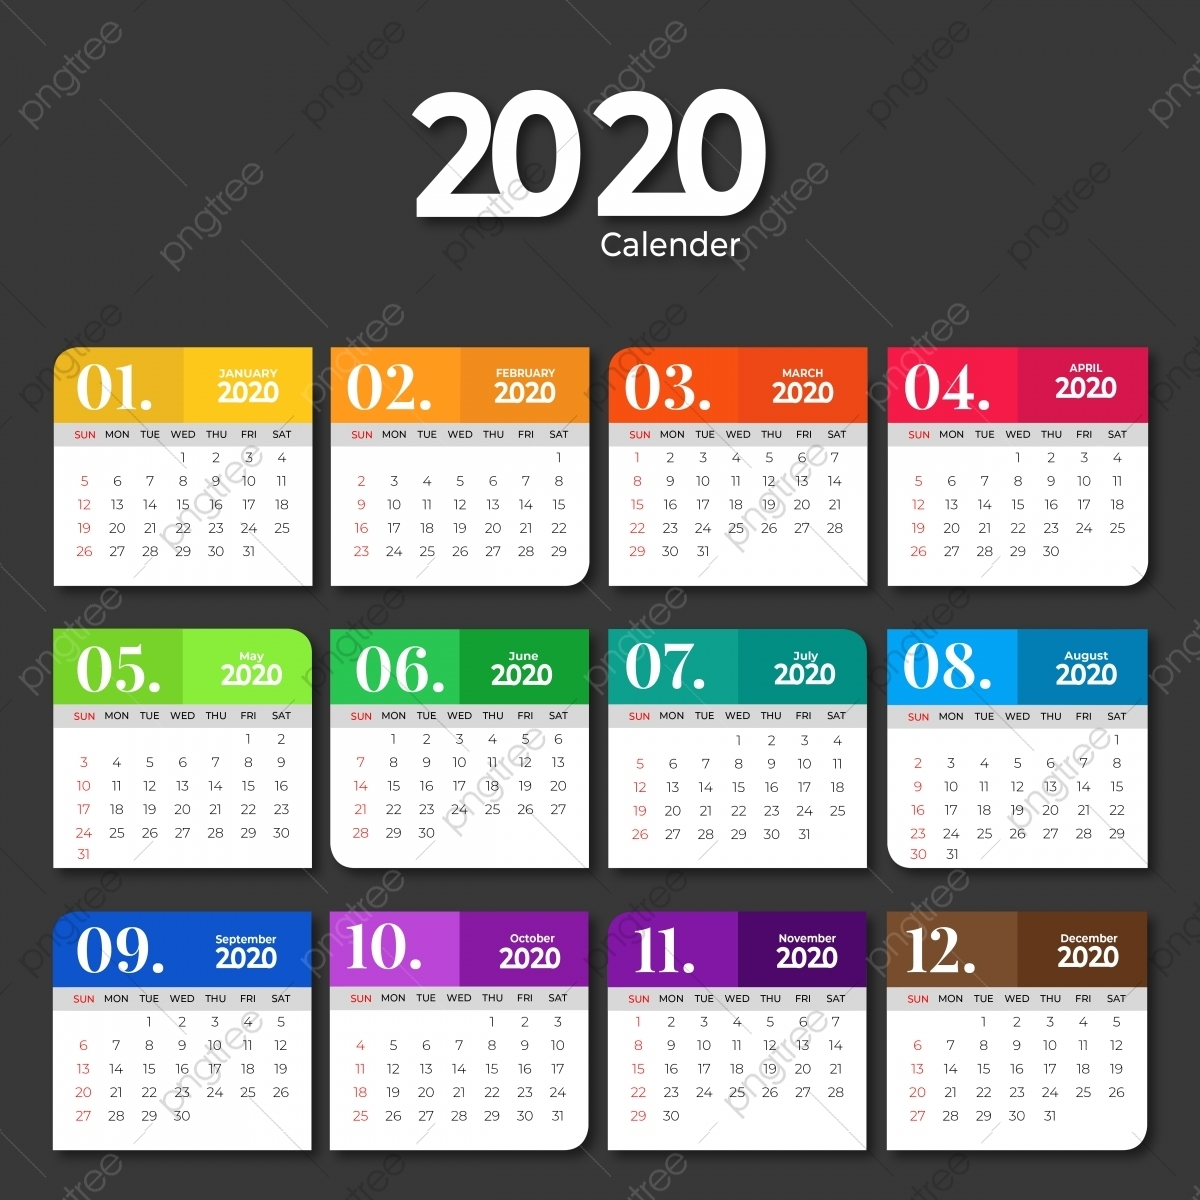 2020 Calendar Template Design With Solid Colors, 2020